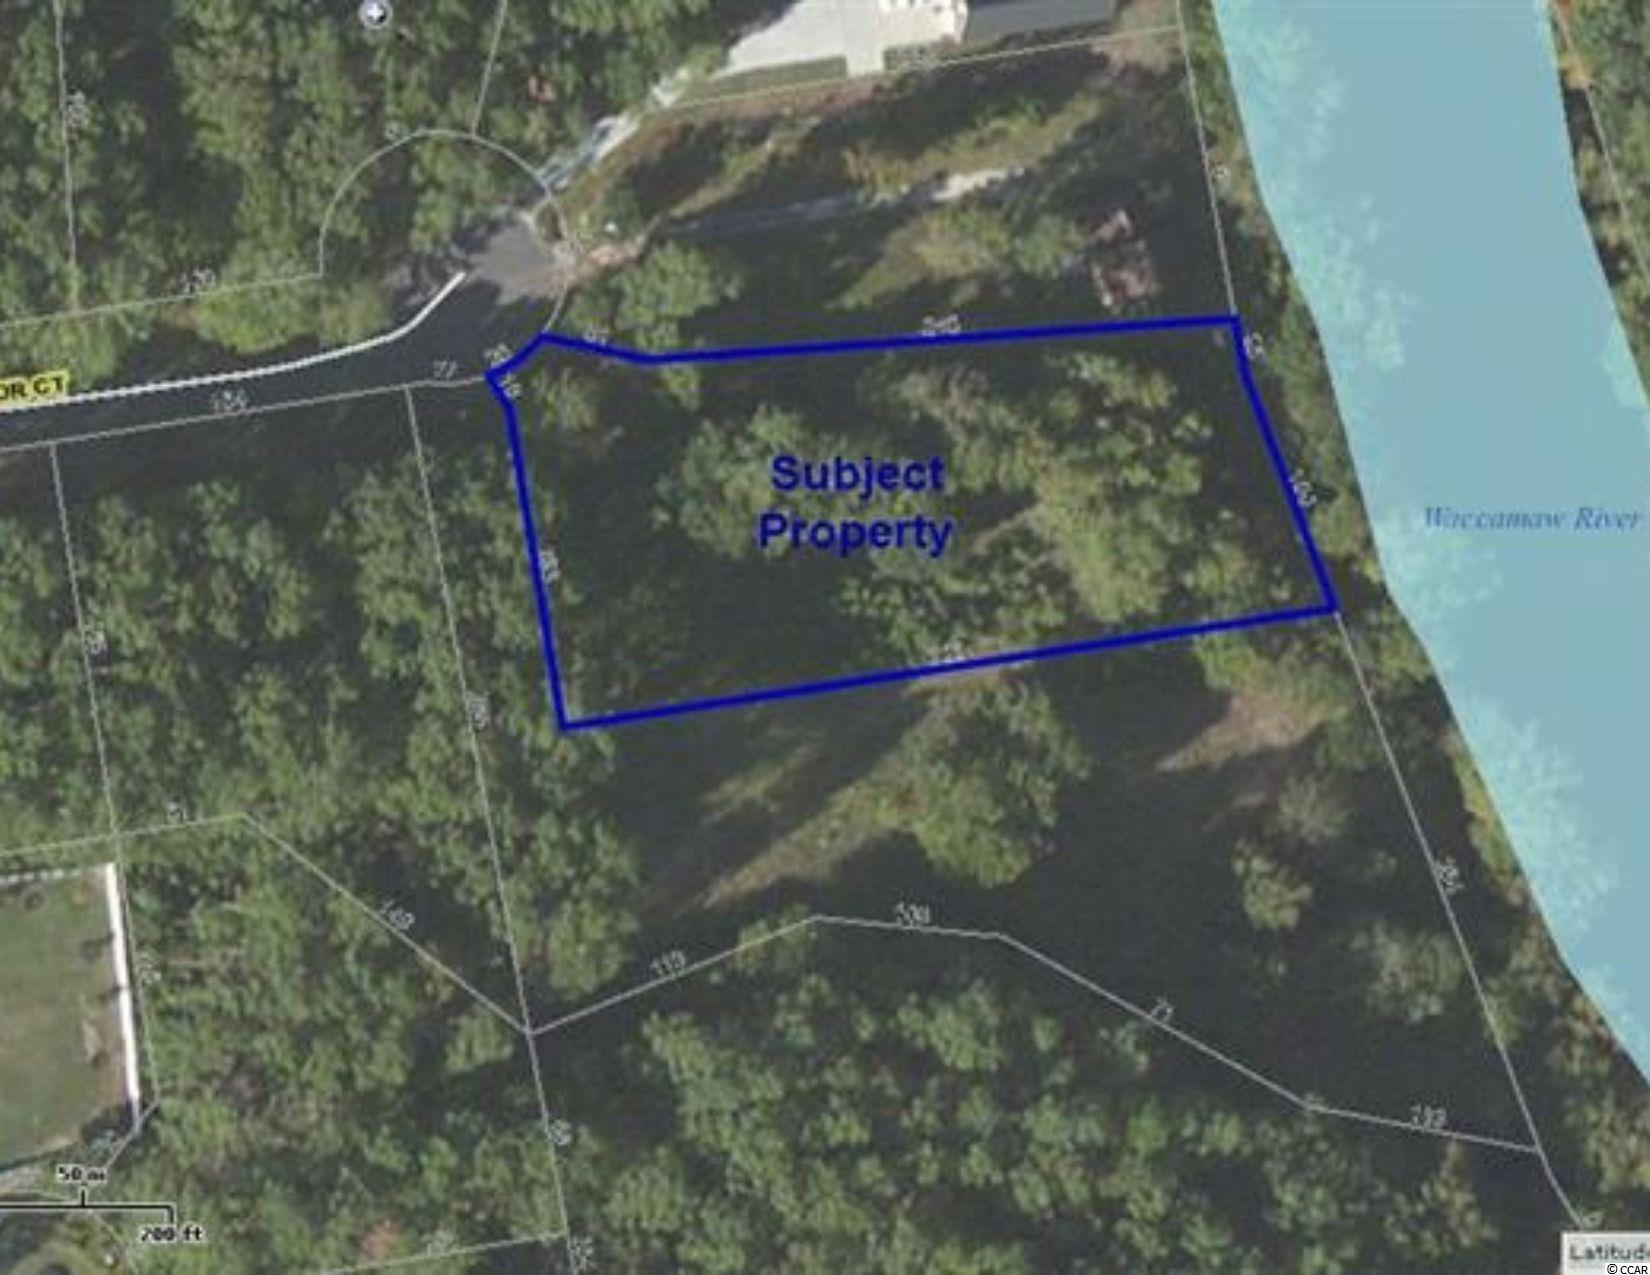 One acre Residential Lot on the Waccamaw River in Caines Landing with 100 feet of frontage on the river. Paved road to lot at end of the cul-de-sac. Community has its own private boat landing close by. Adjoining lot #18 is also available.